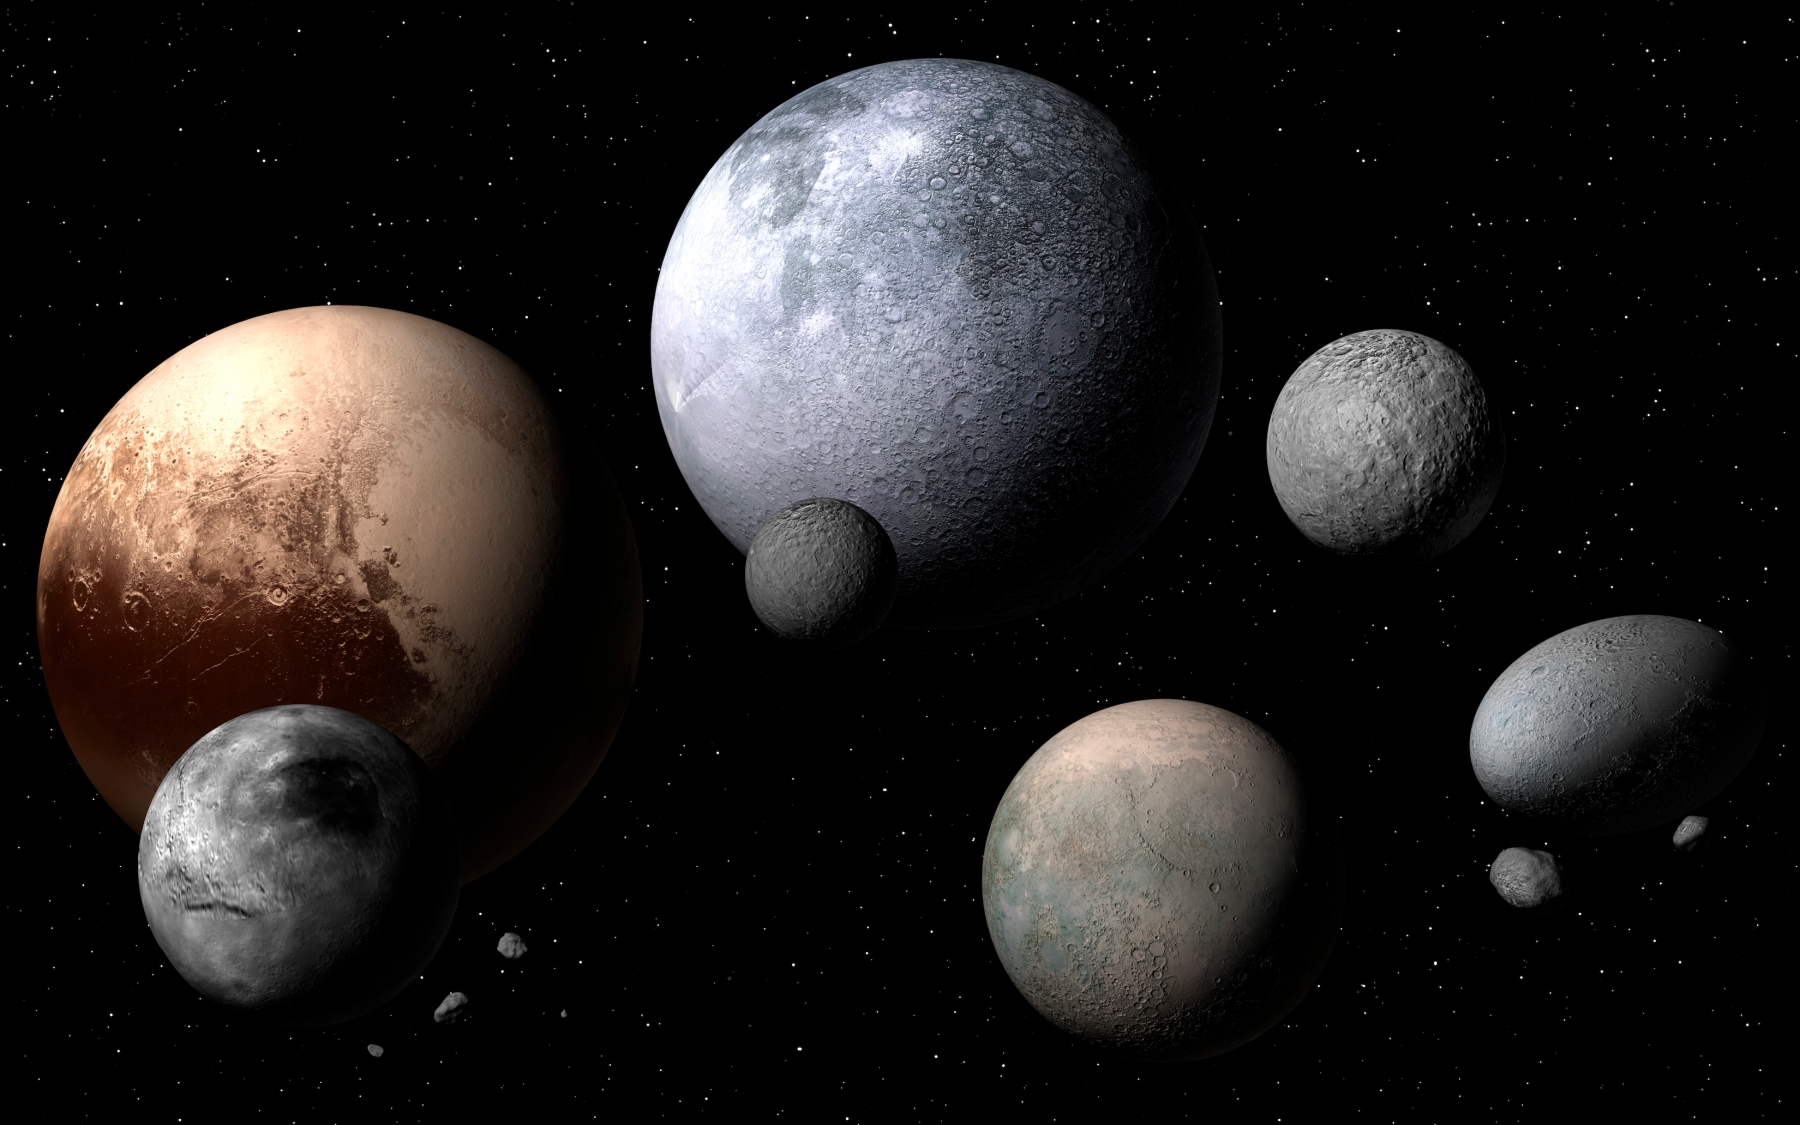 """Dwarf planets and moons, illustration. A dwarf planet is a planetary mass object orbiting the Sun that is not a true planet. The discovery of a new dwarf planet, nicknamed """"the Goblin"""" was recently announced. (Photo by MARK GARLICK/SCIENCE PHOTO LIBRARY/Getty Images)"""